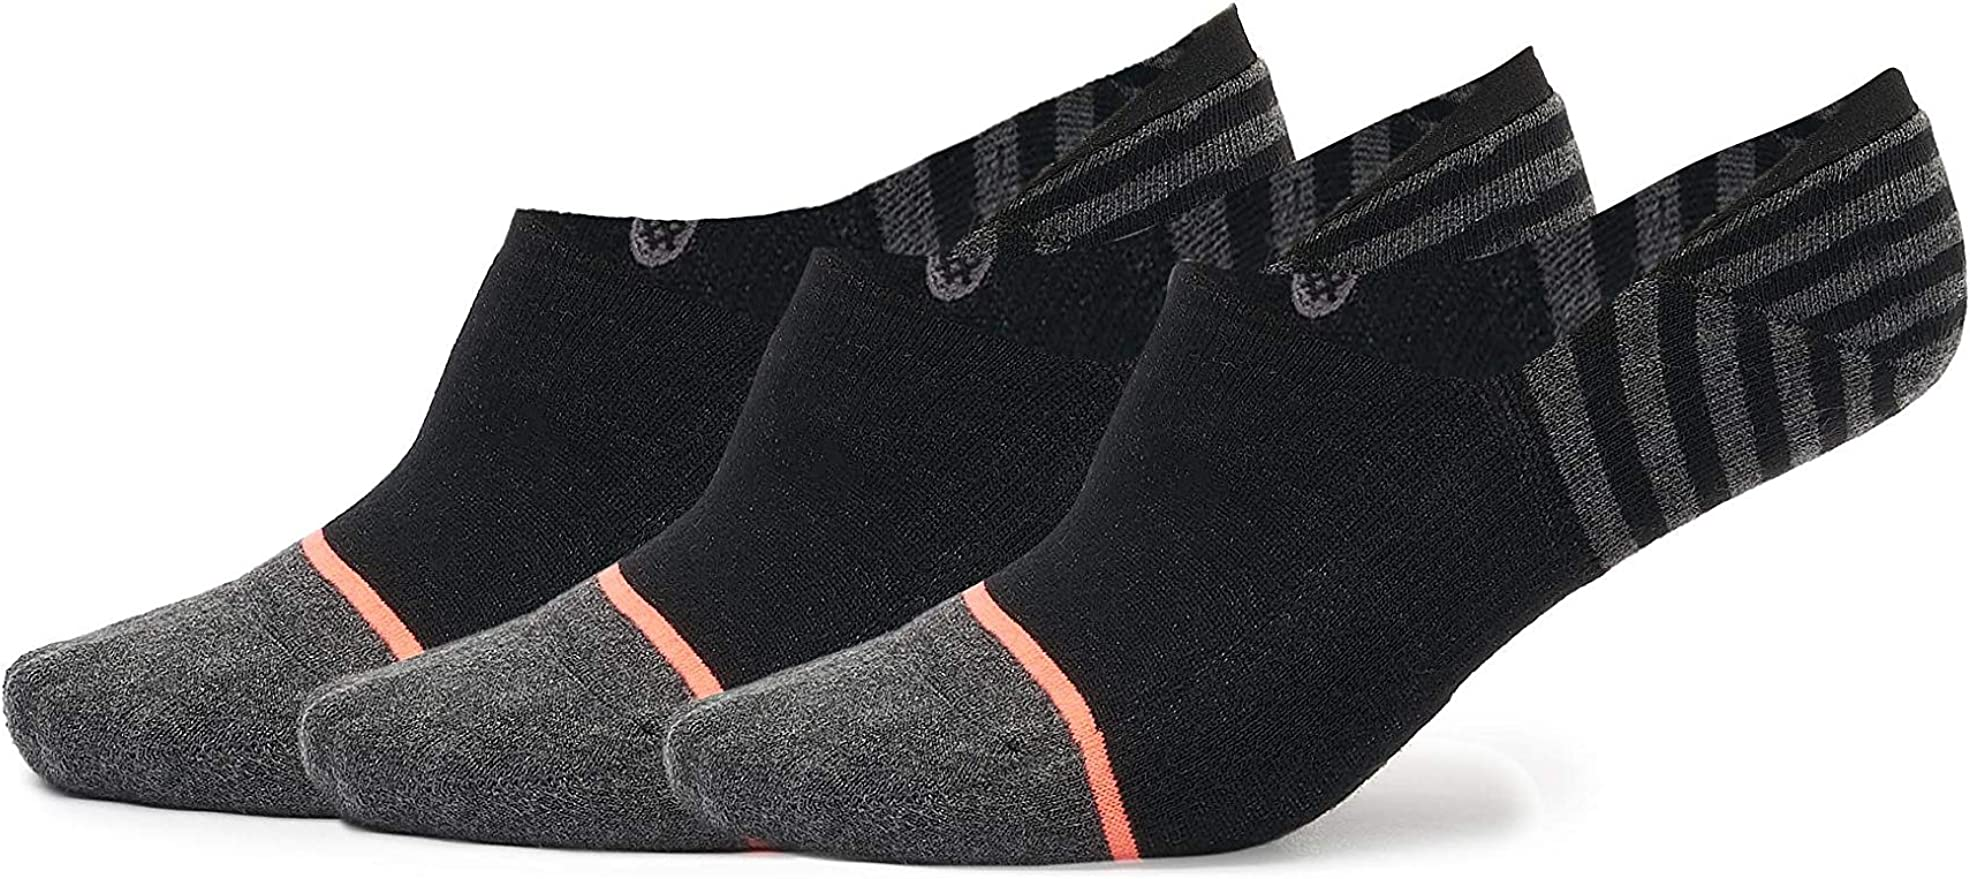 STANCE Womens Reign Check 3 Pack Socks